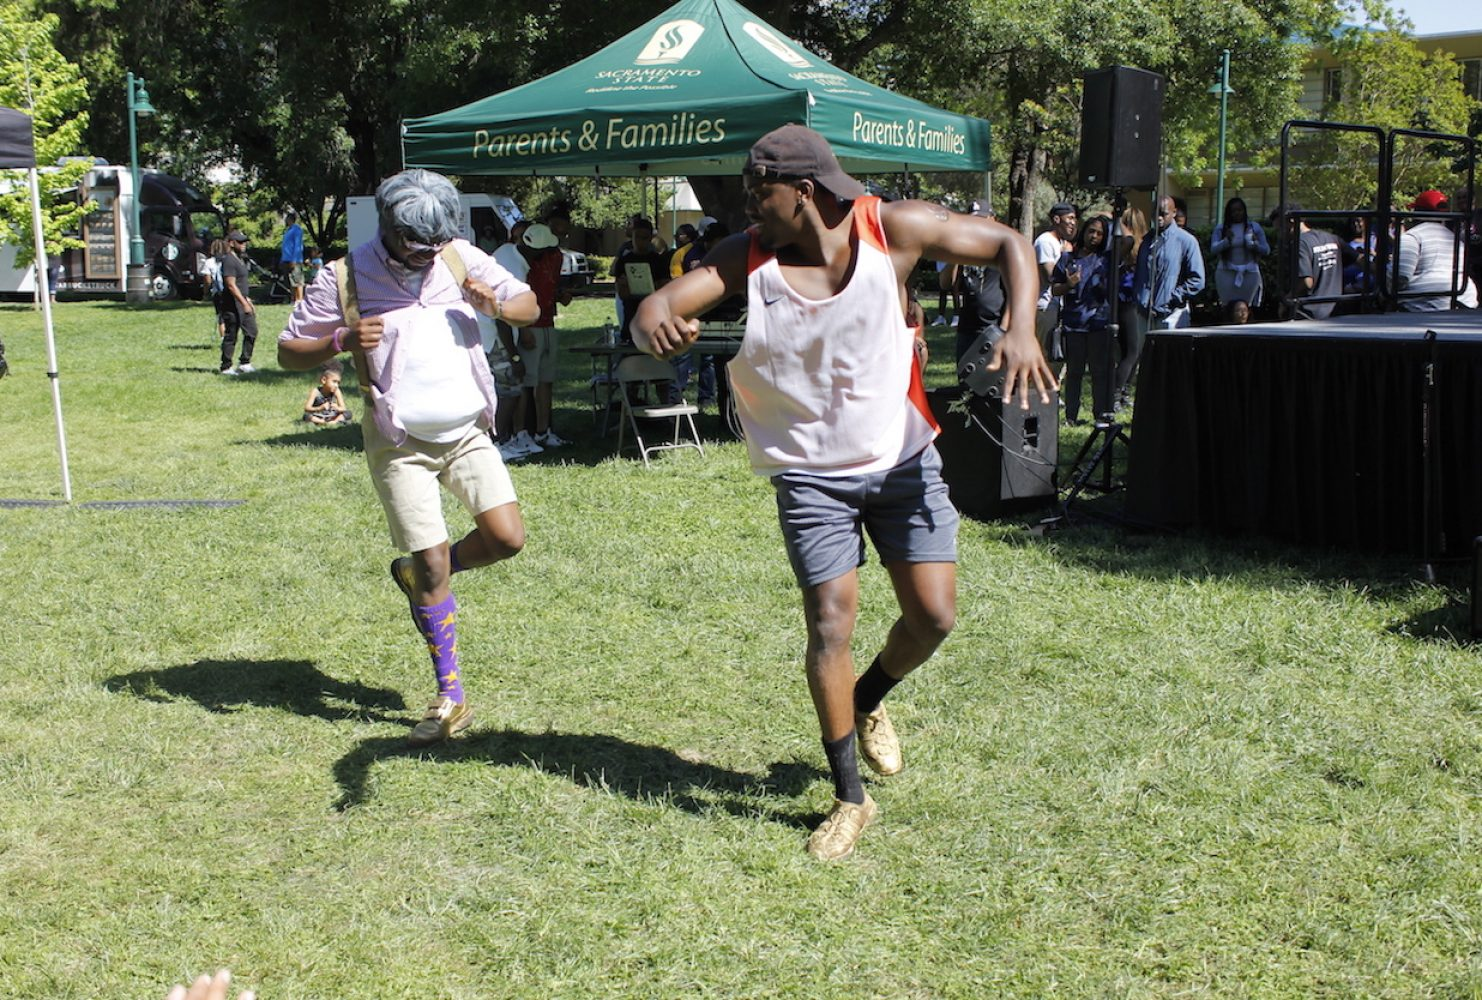 """Fraternity Omega Psi Phi members Moises Seraphin, left, dance along to live music during Black Family Day on April 29 in the Main Quad. Seraphin said that the event was """"an opportunity for organizations to connect and show support and for members to get involved around campus."""" (Photo by Rin Carbin)"""